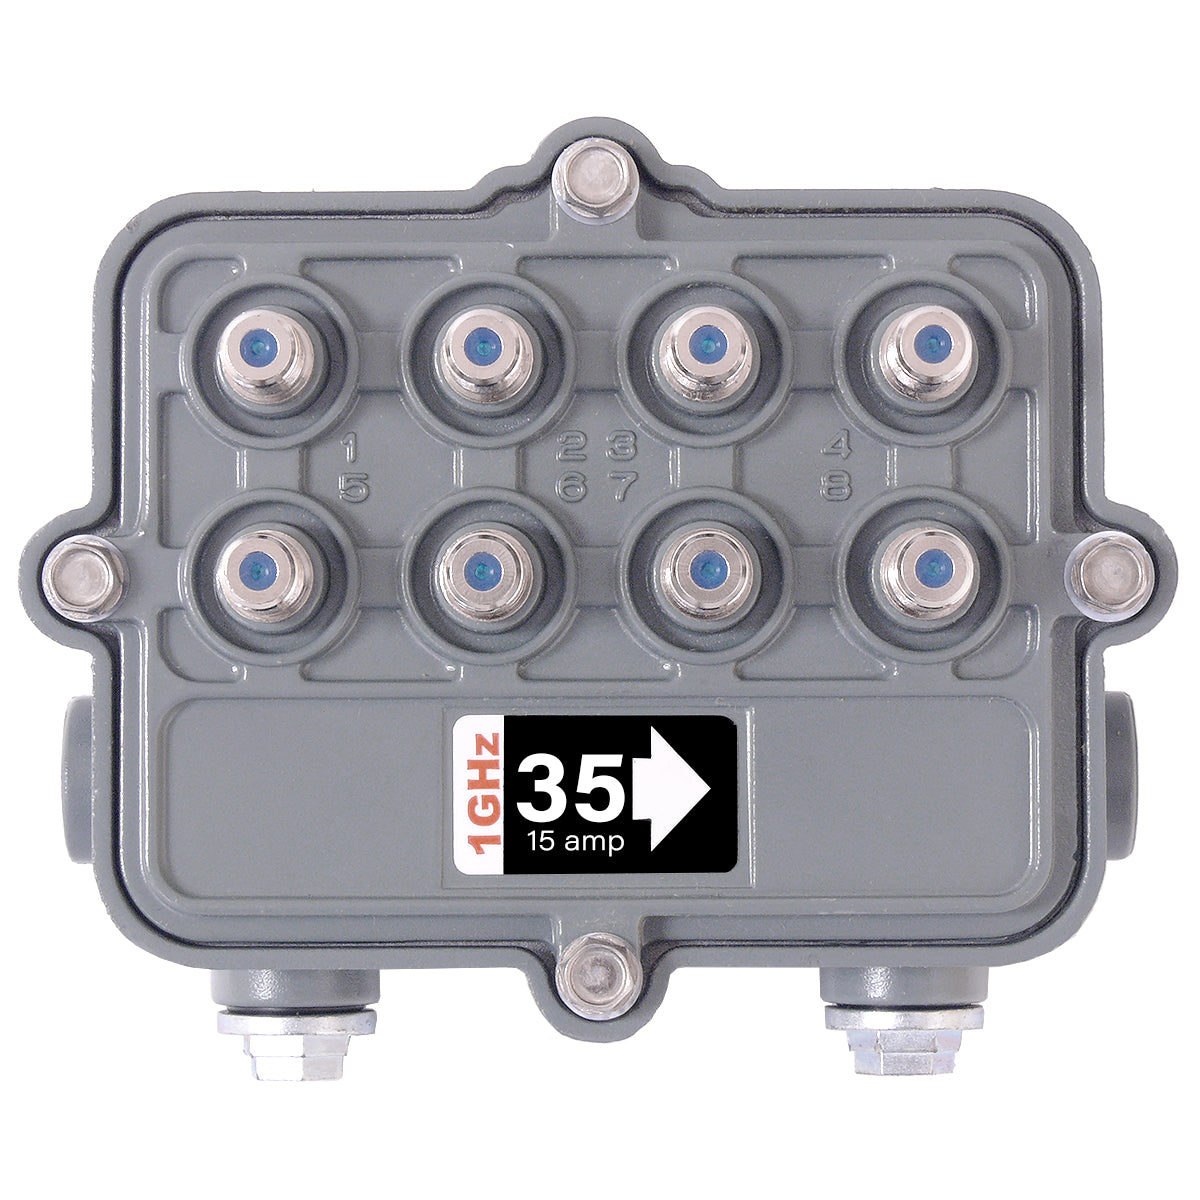 SB-8/35G/SR 1GHz Outdoor Hardline Multitap 8 Way 35dB